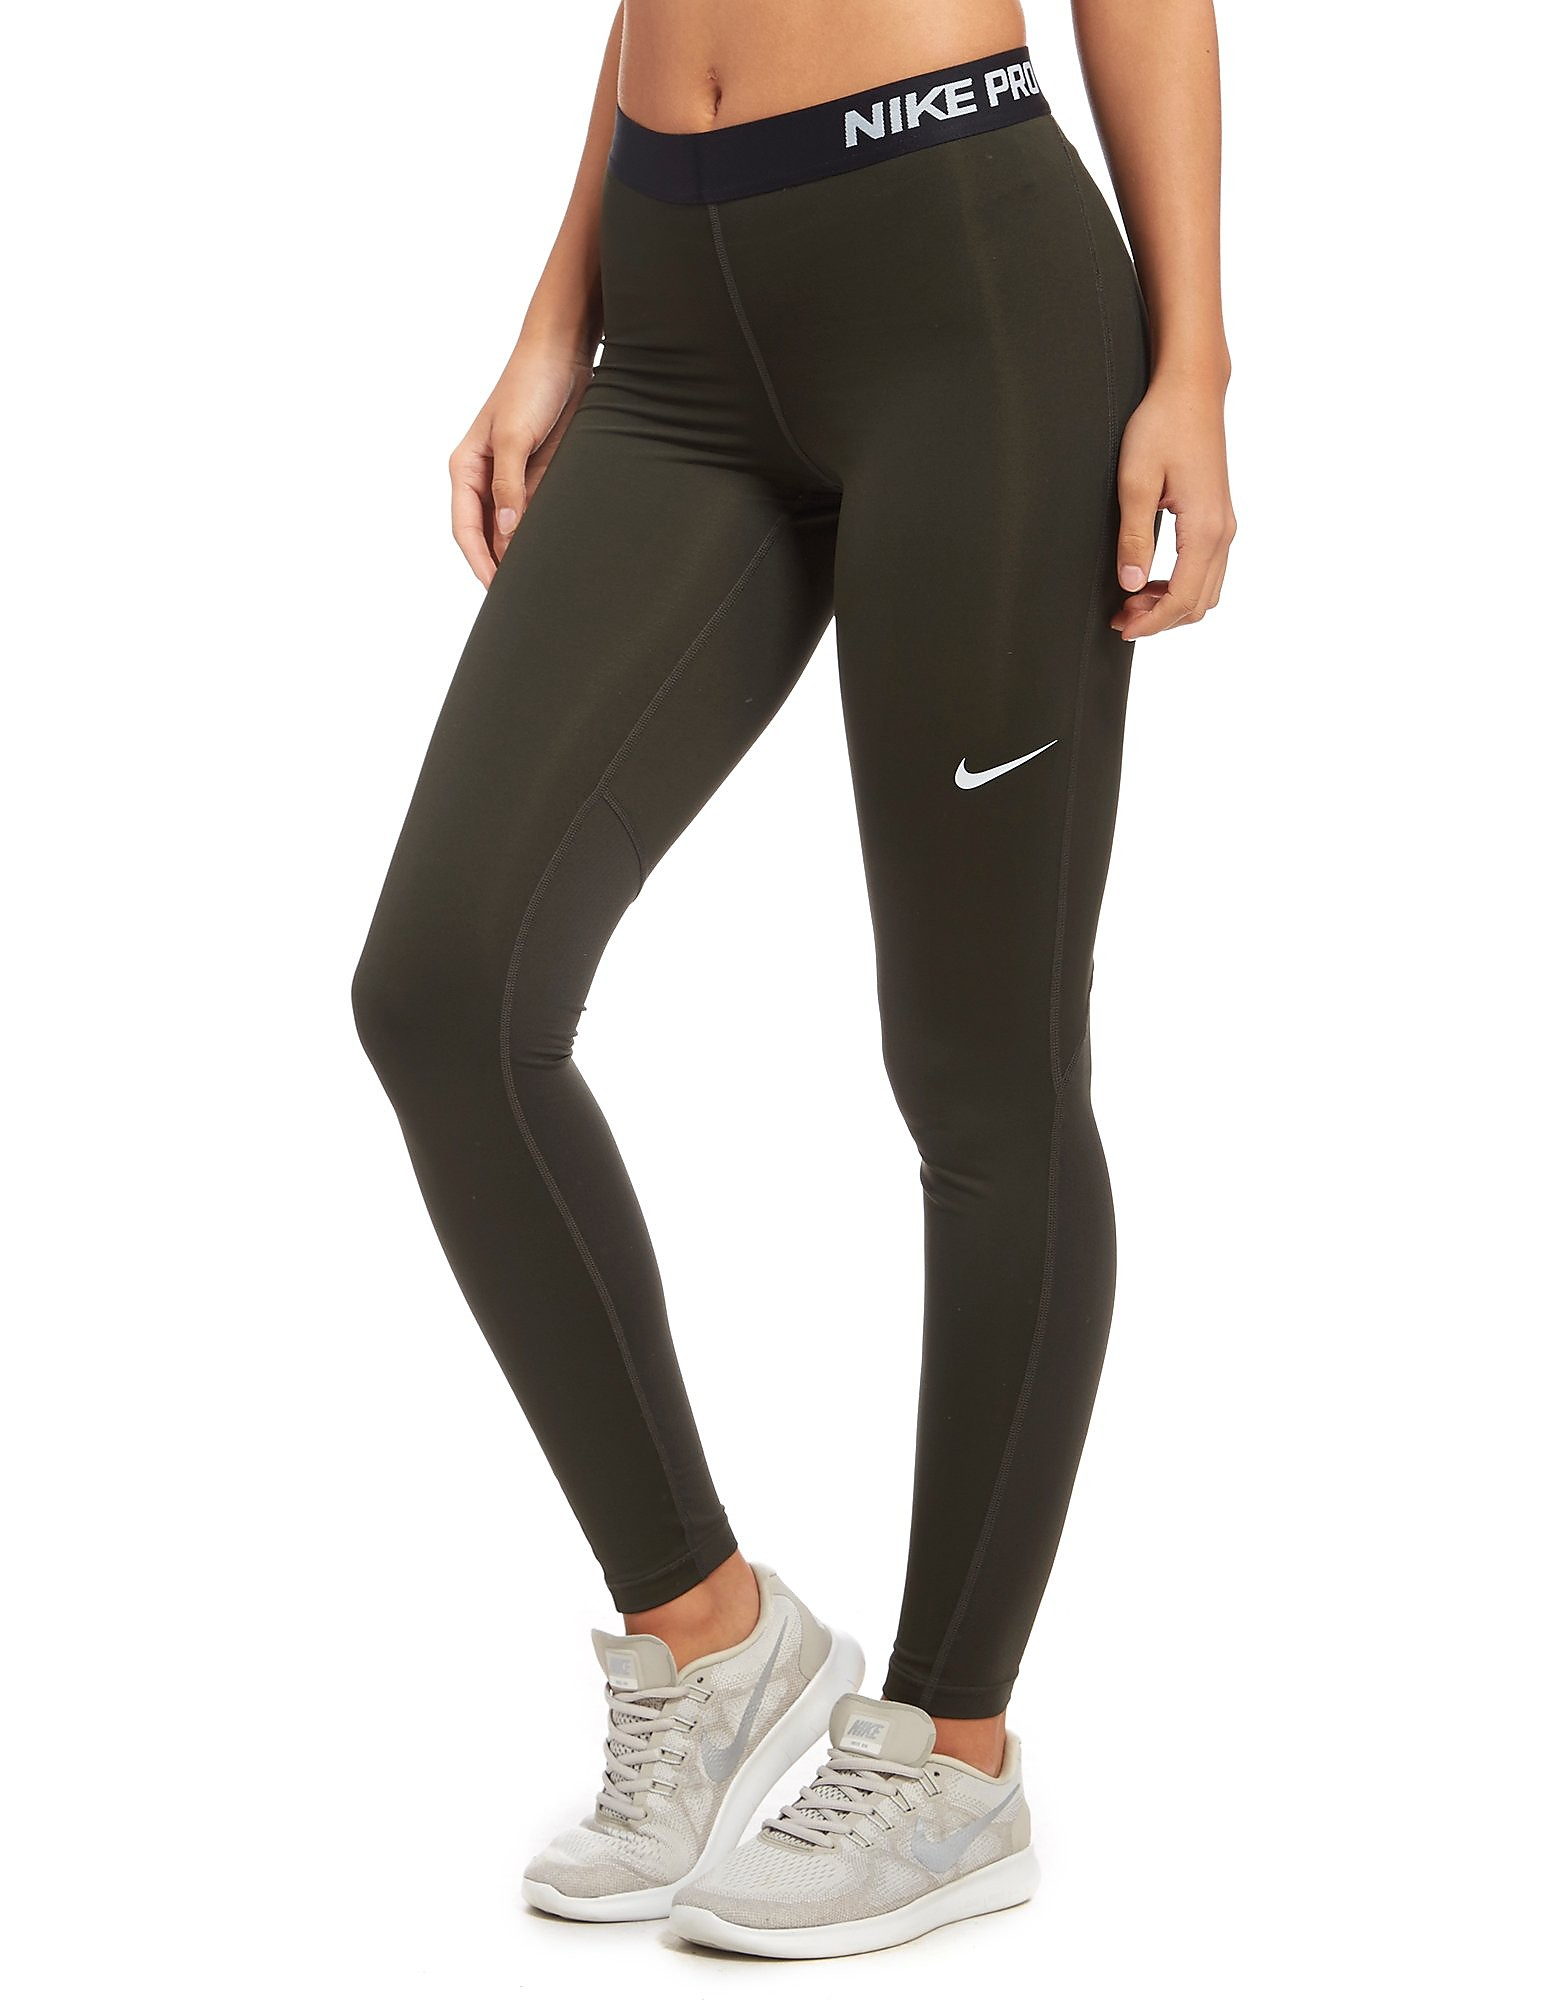 Nike Pro Tight Leggings Femme